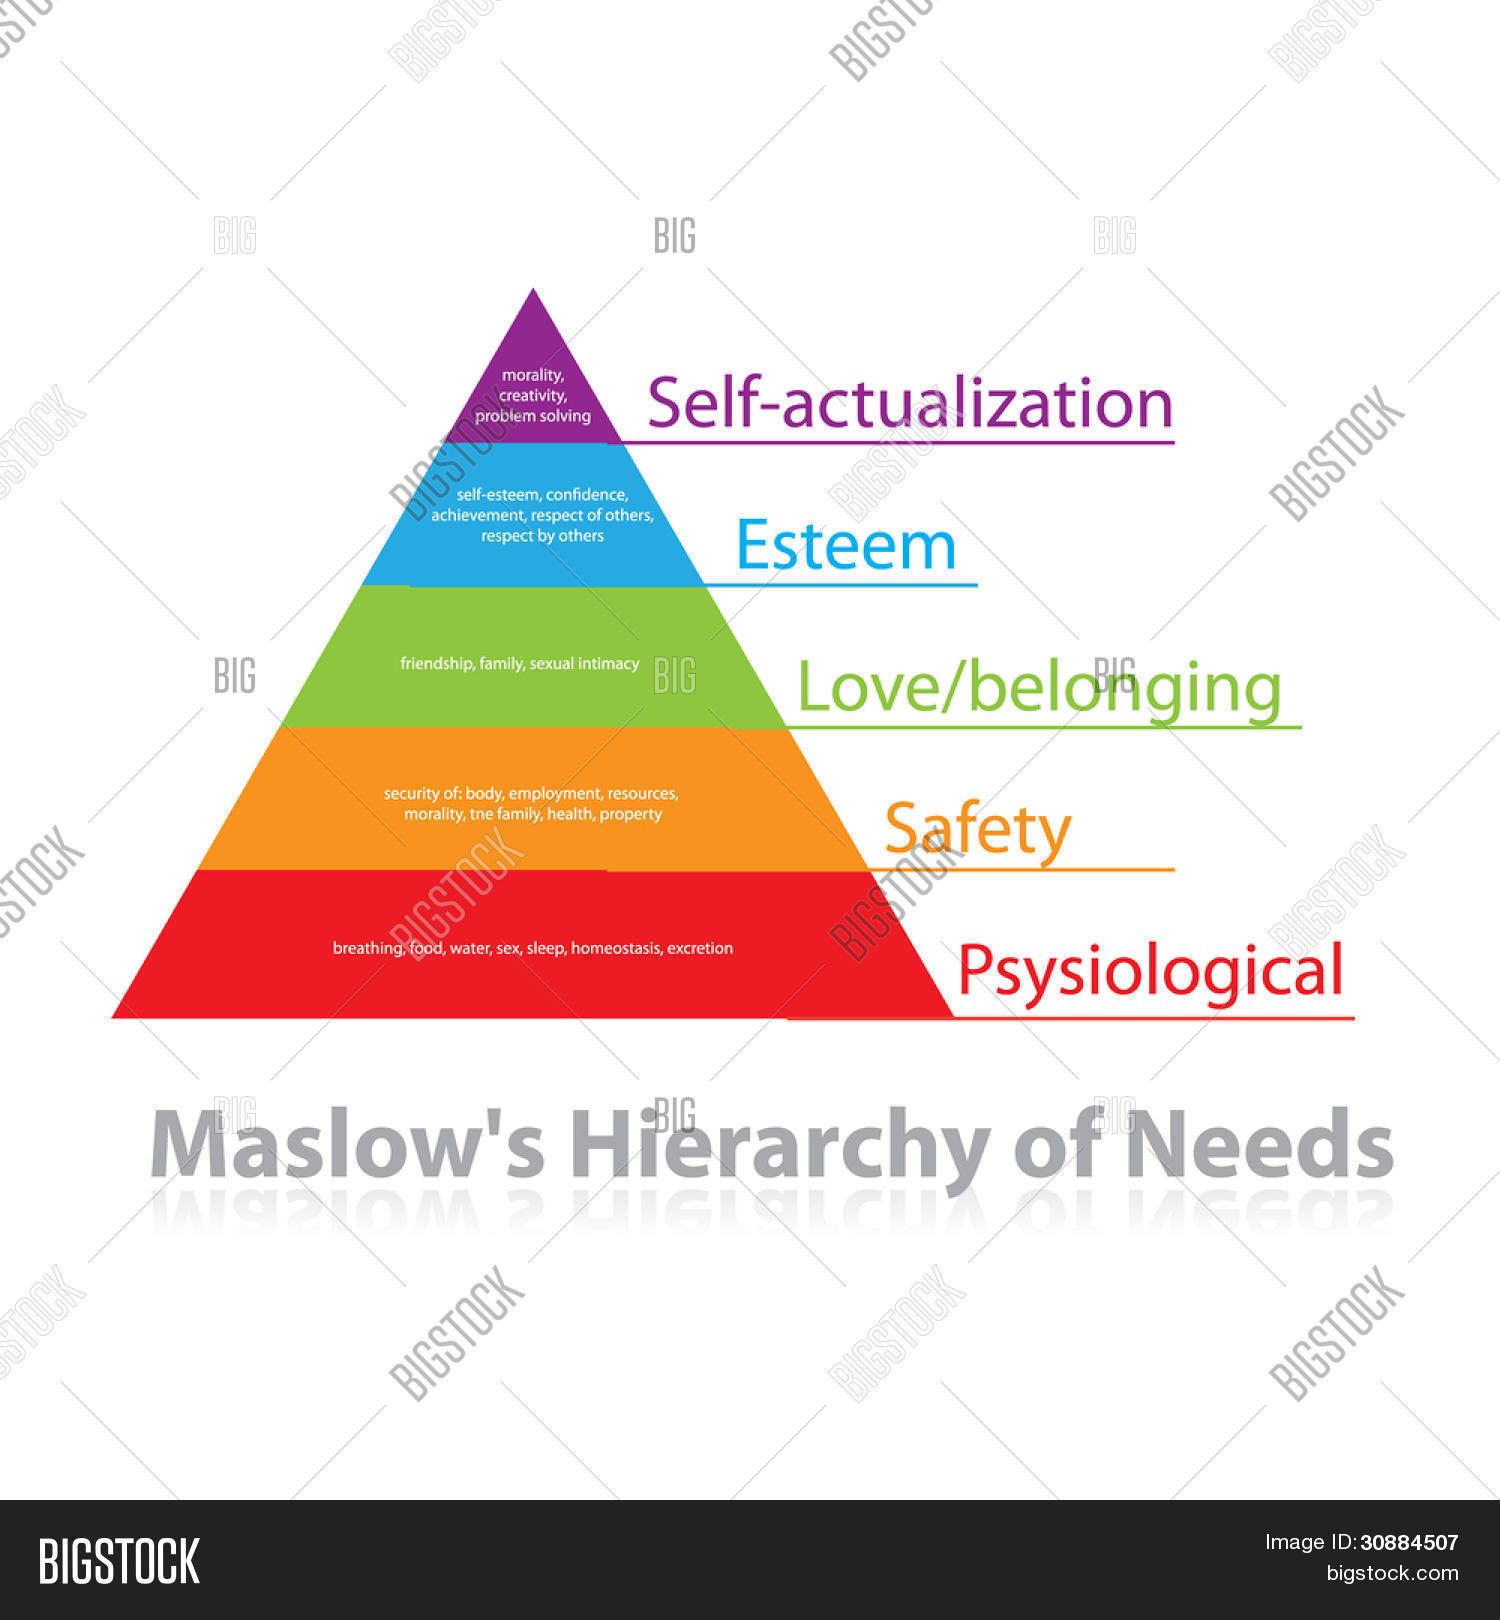 Maslows pyramid needs analysis vector photo bigstock maslows pyramid of needs analysis of human needs and position them in a hierarchy publicscrutiny Images